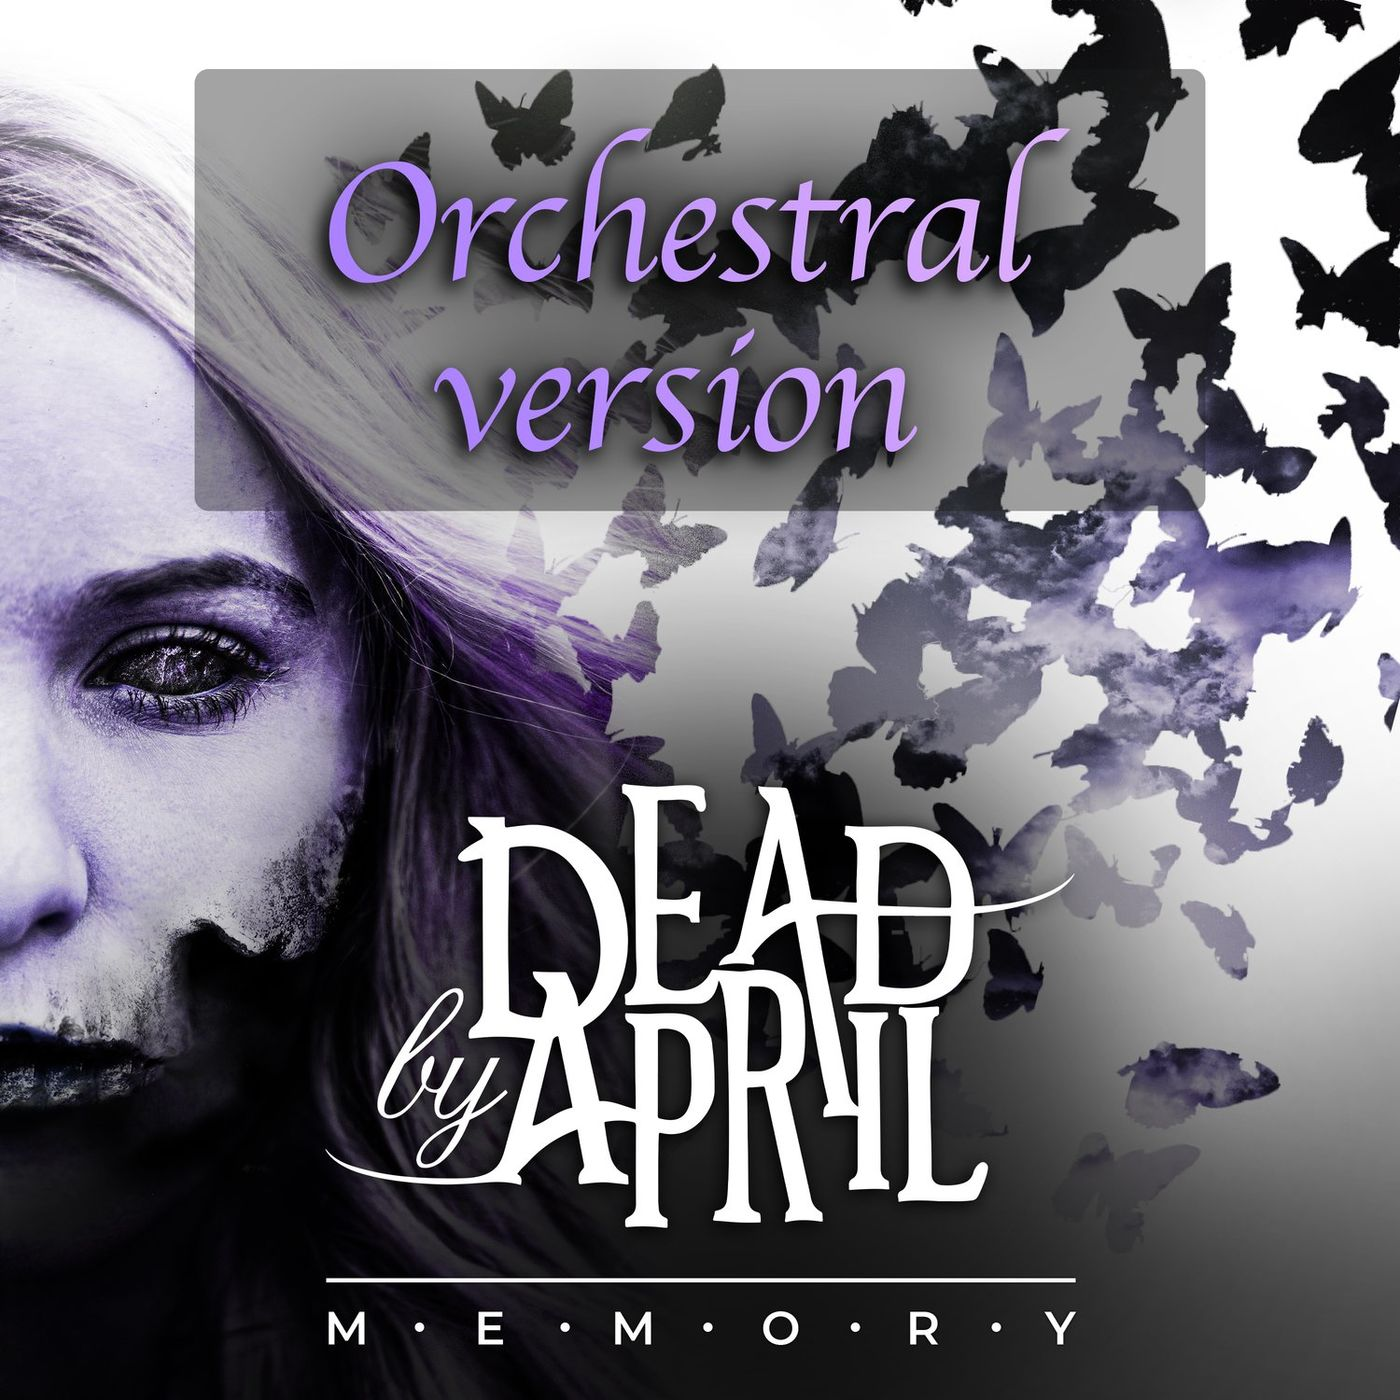 Dead by April - Memory (Orchestral Version) [single] (2020)